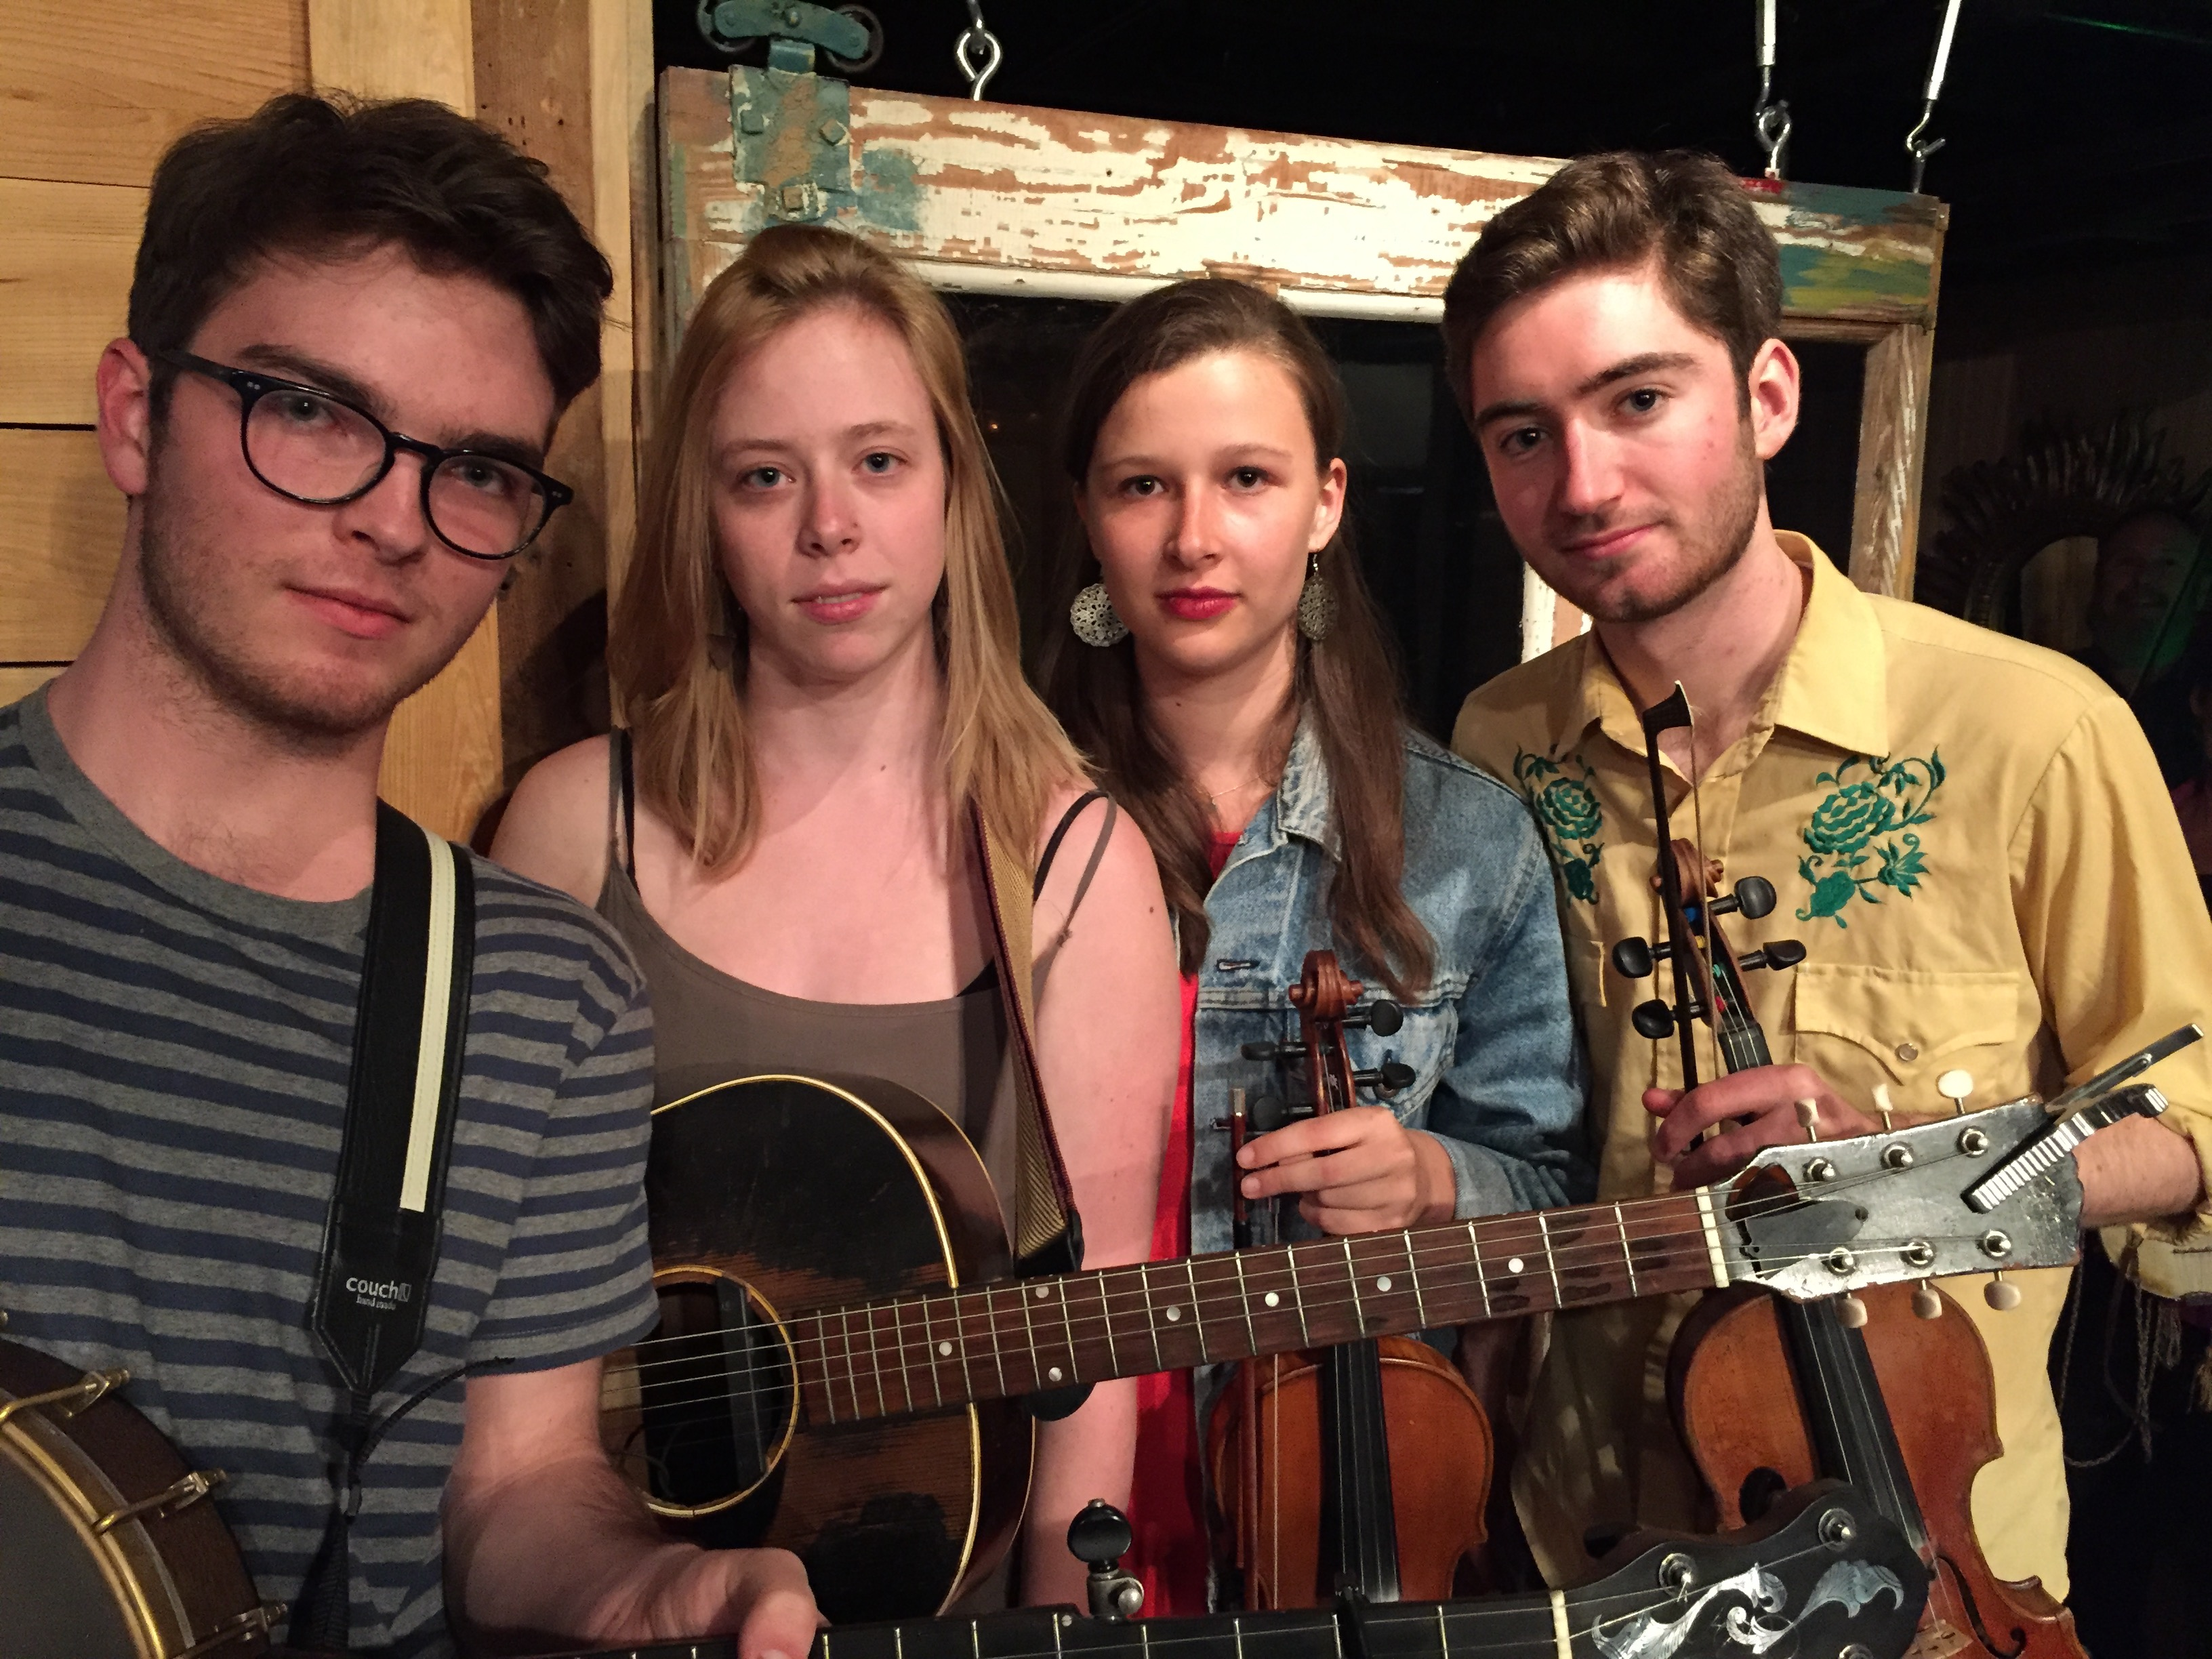 Caption: The Onlies (L-R Leo Shannon, Vivian Leva, Sami Braman, Riley Calcagno) bring great skill, creativity, and a deep love of tradition to their interpretation of traditional music and their own new songs and tunes.  Their May, 2017 concert at Muddy Creek Musi, Credit: Paul Brown